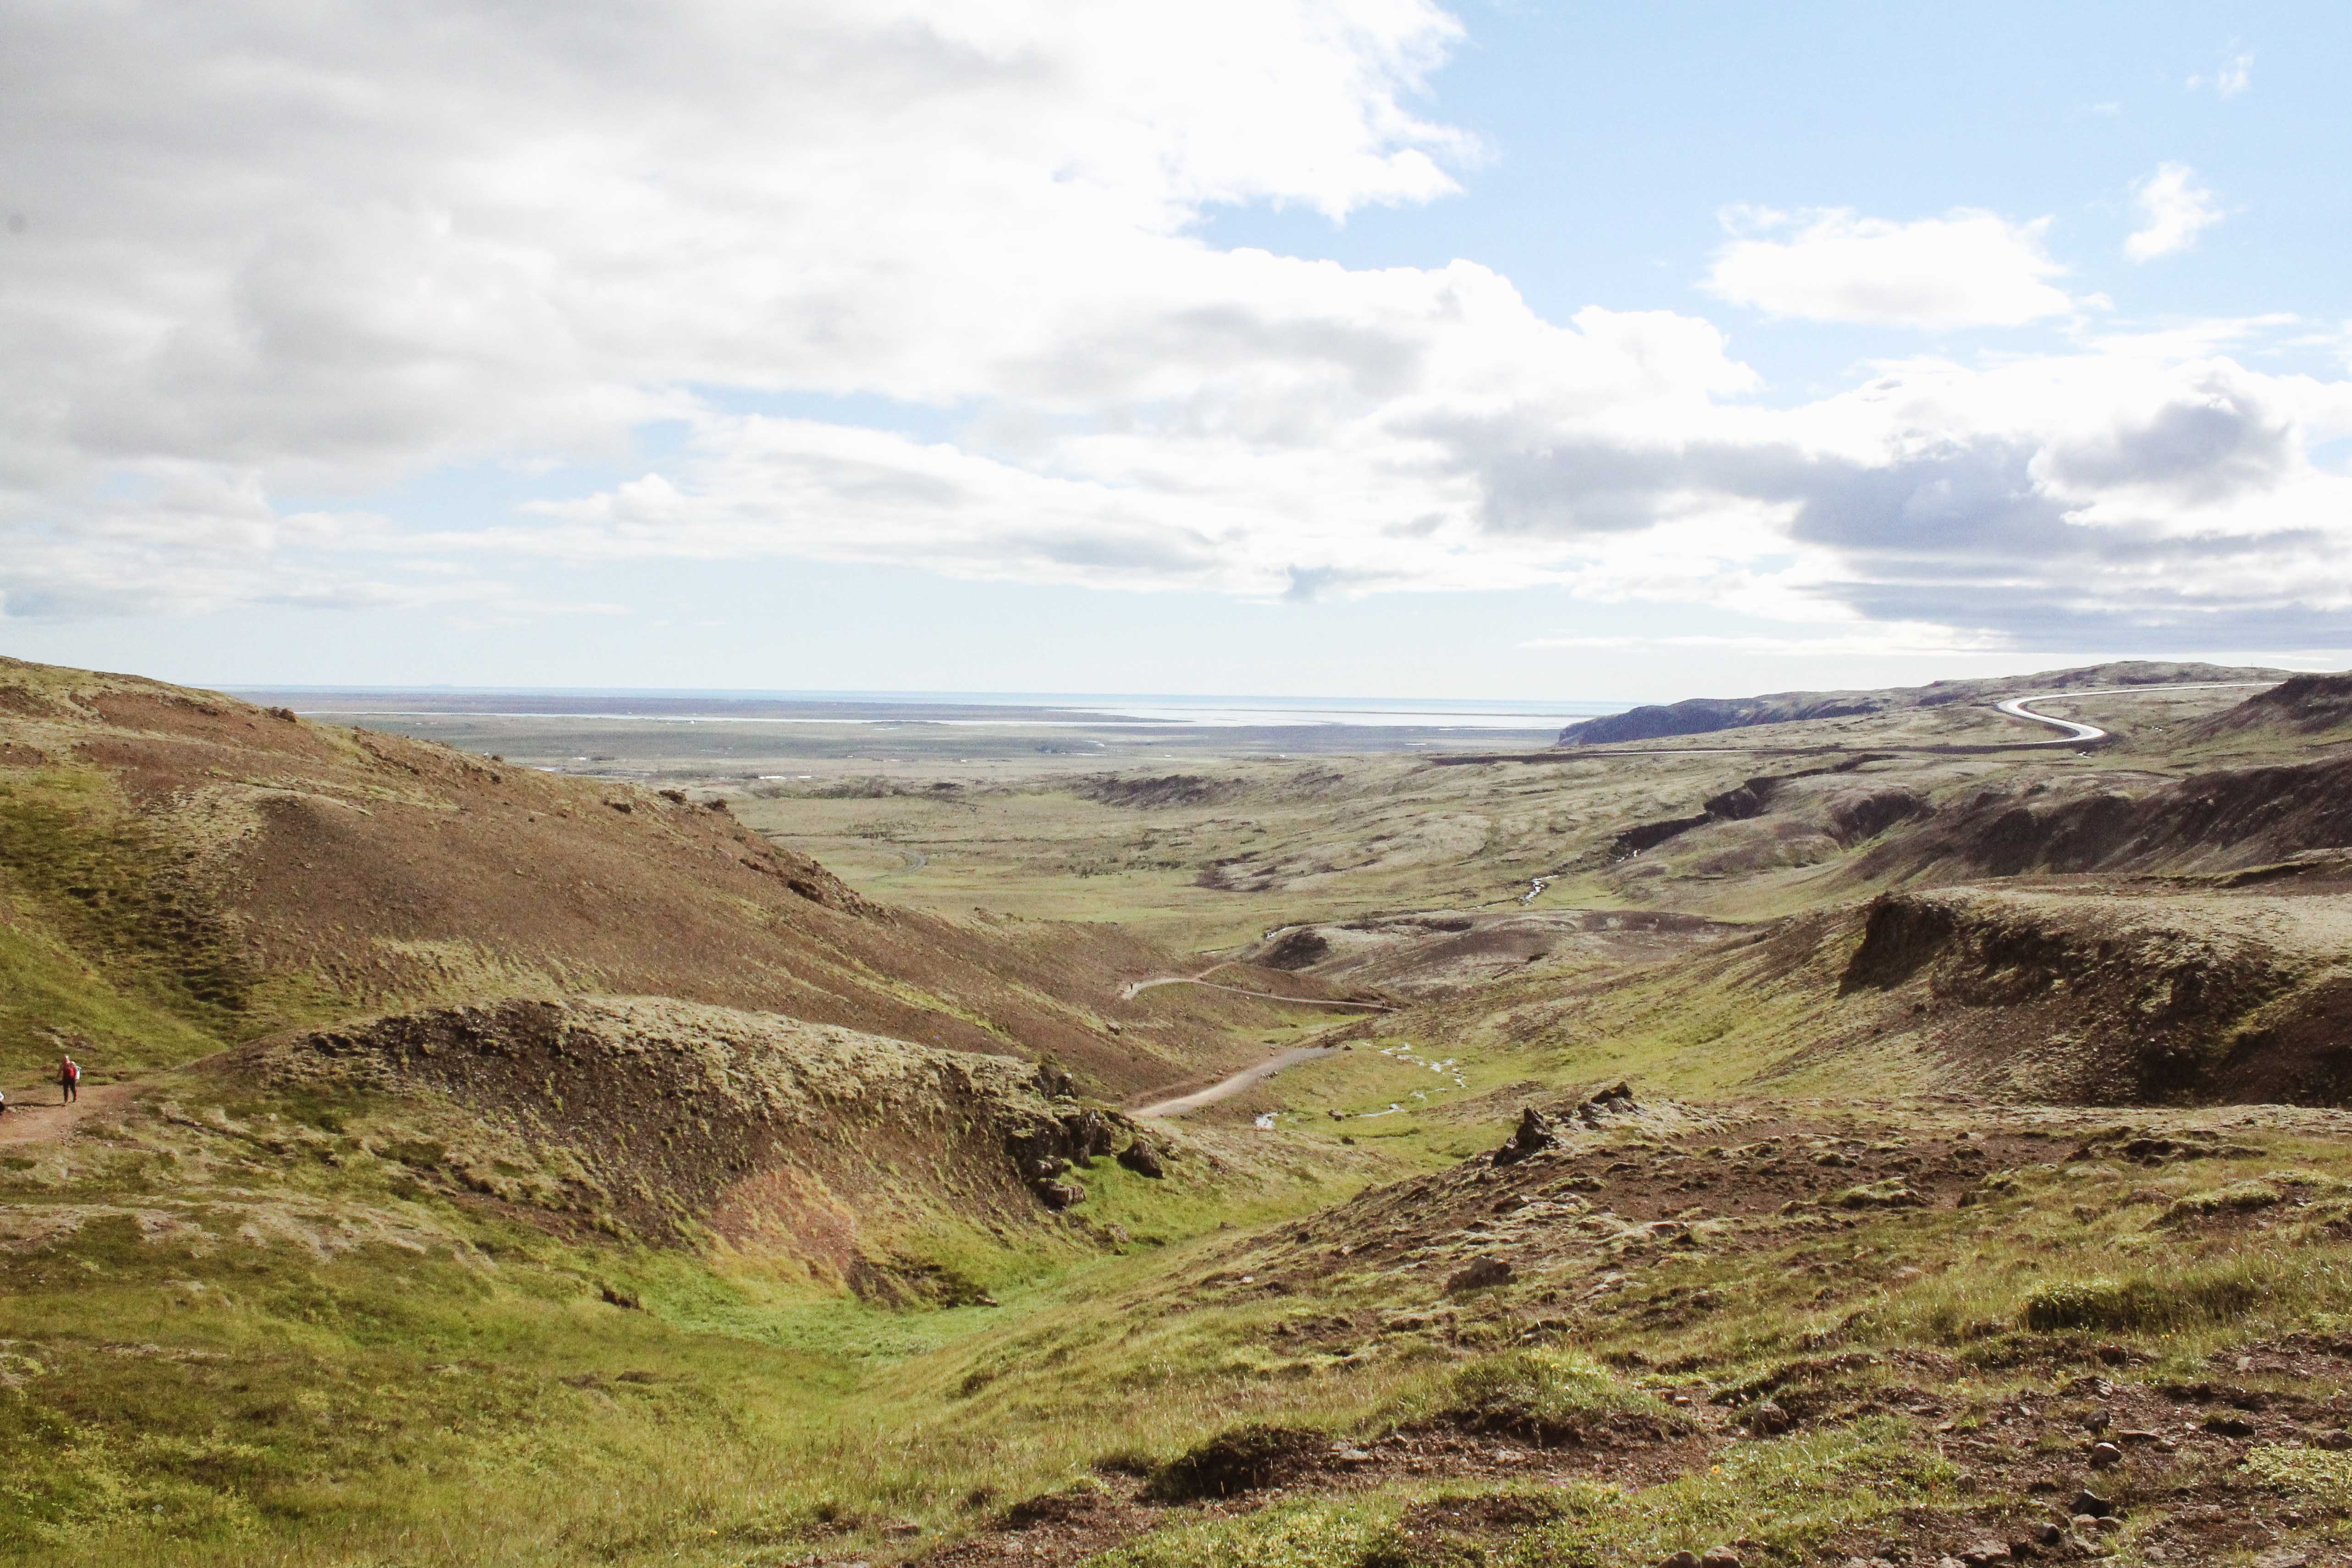 iceland travel guide – part 3